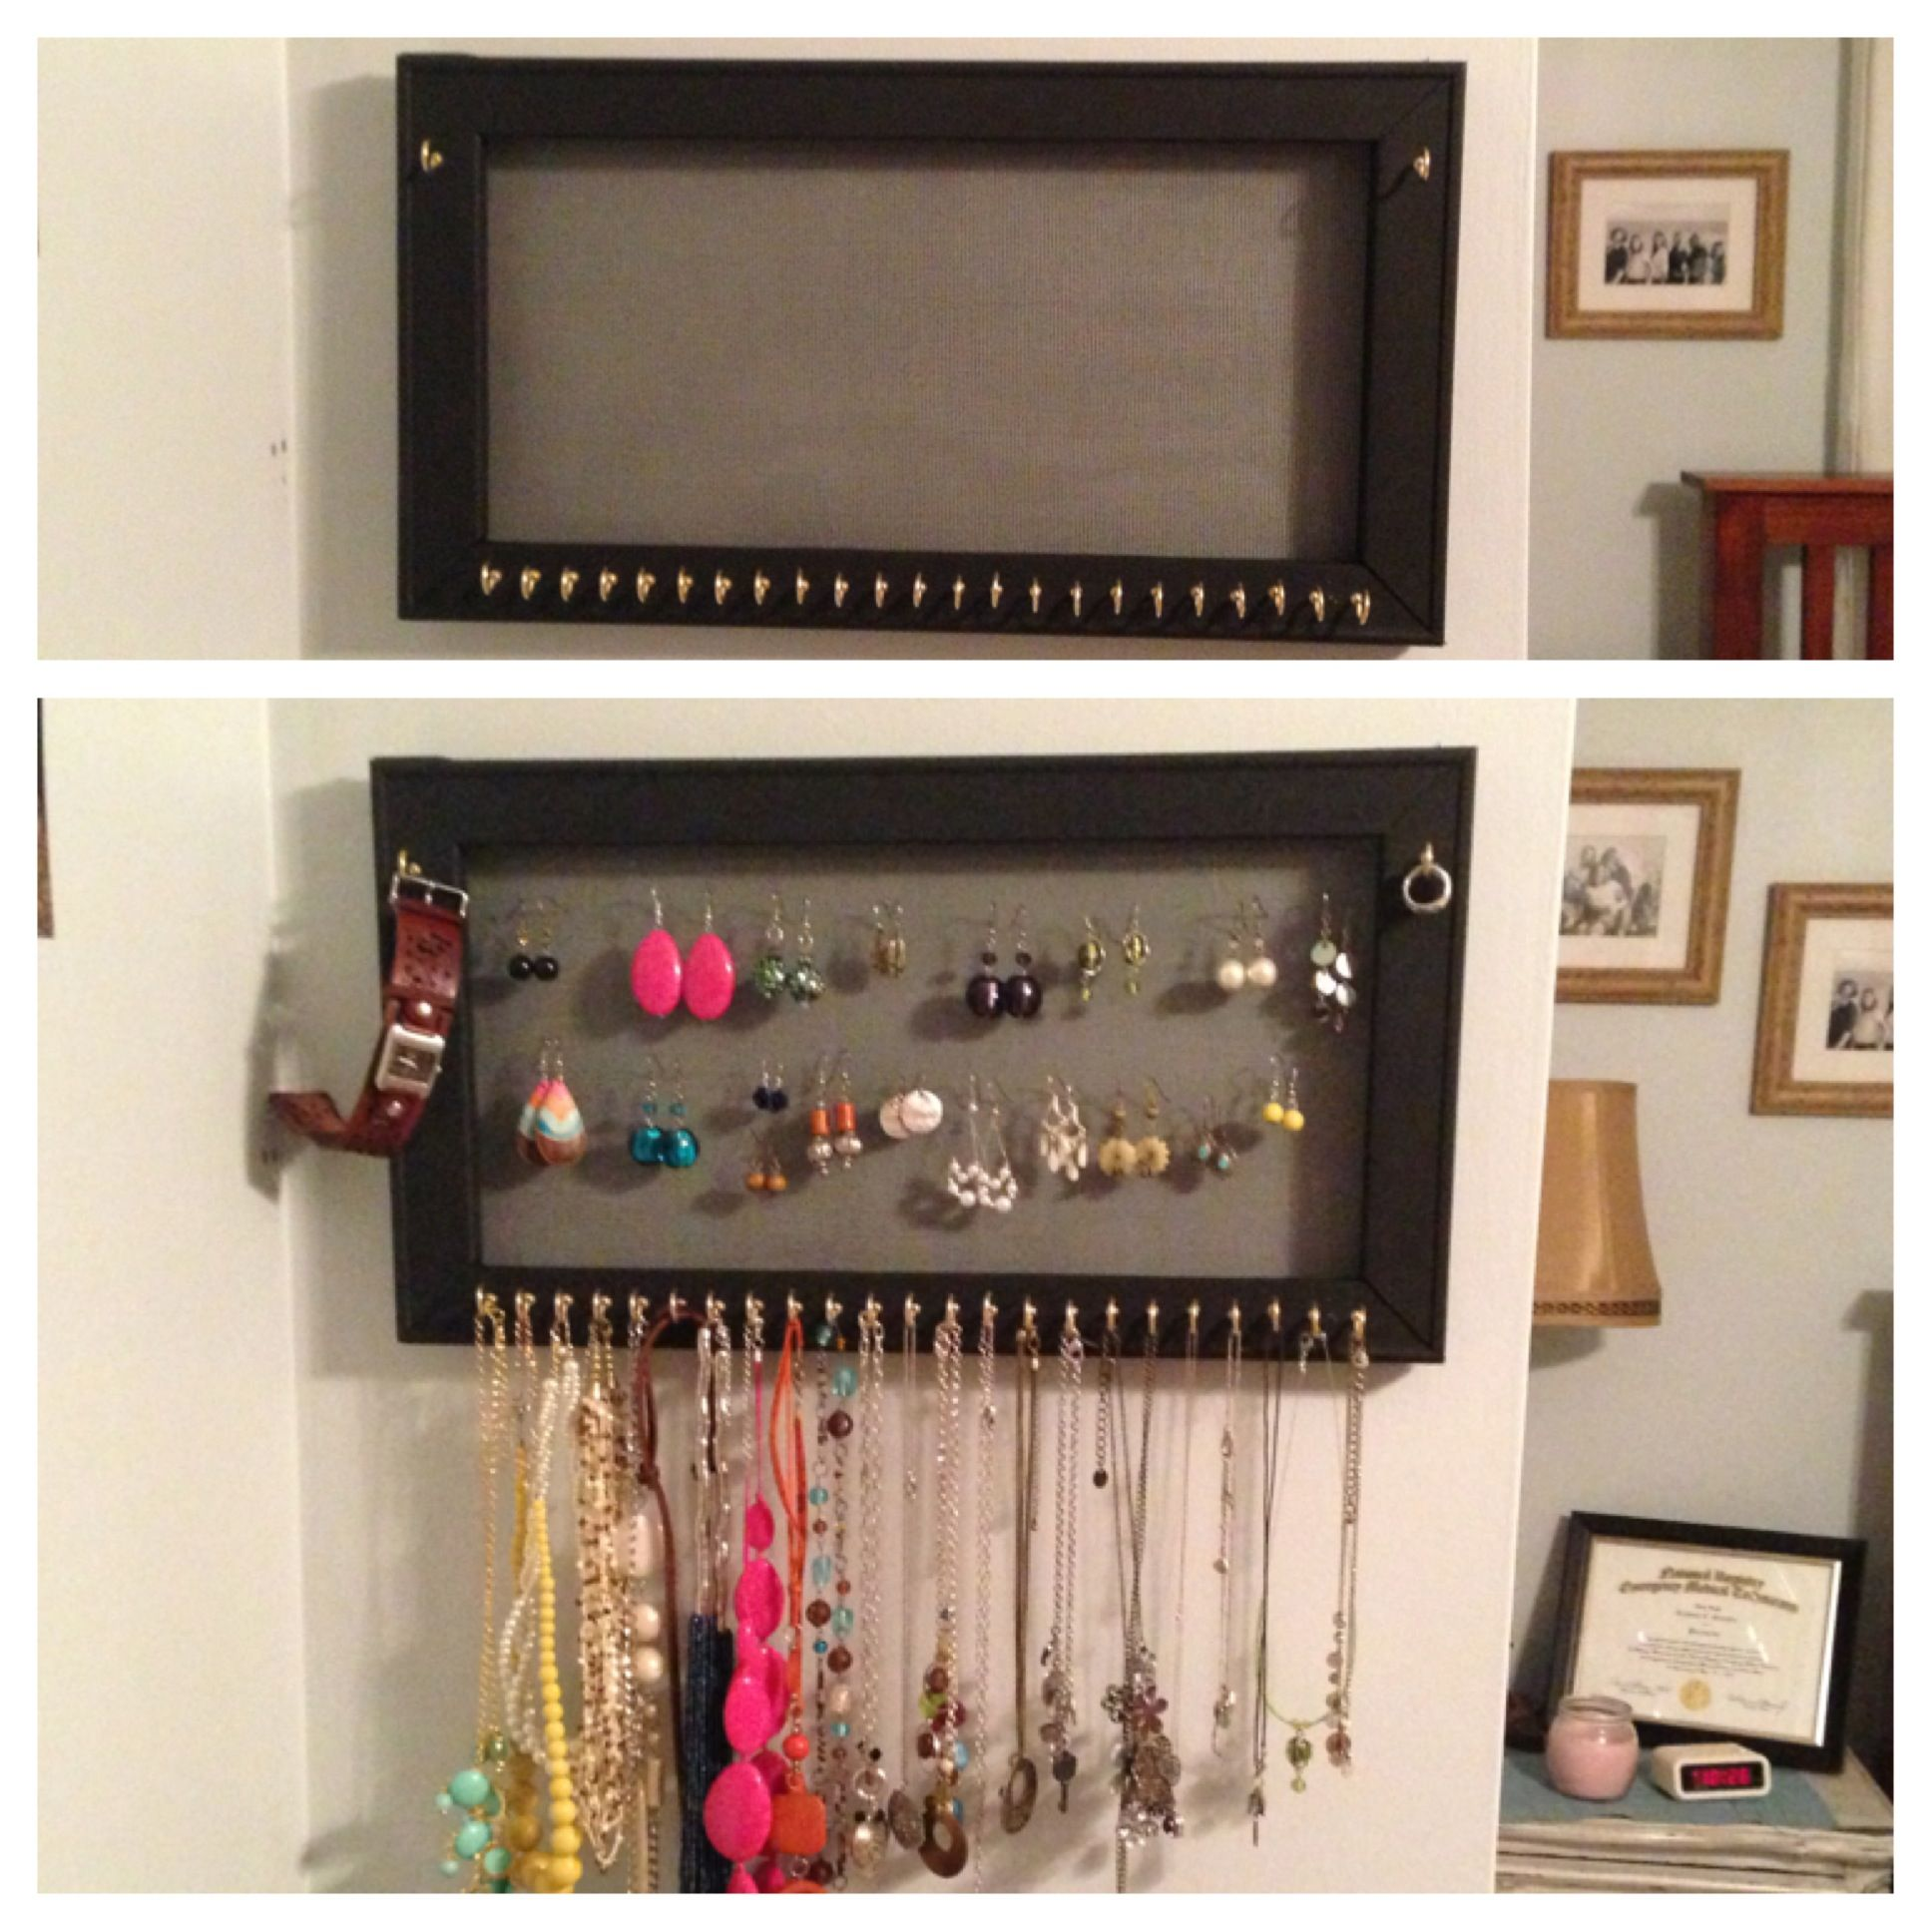 Jewelry organizer I made A wooden frame painted whatever color you